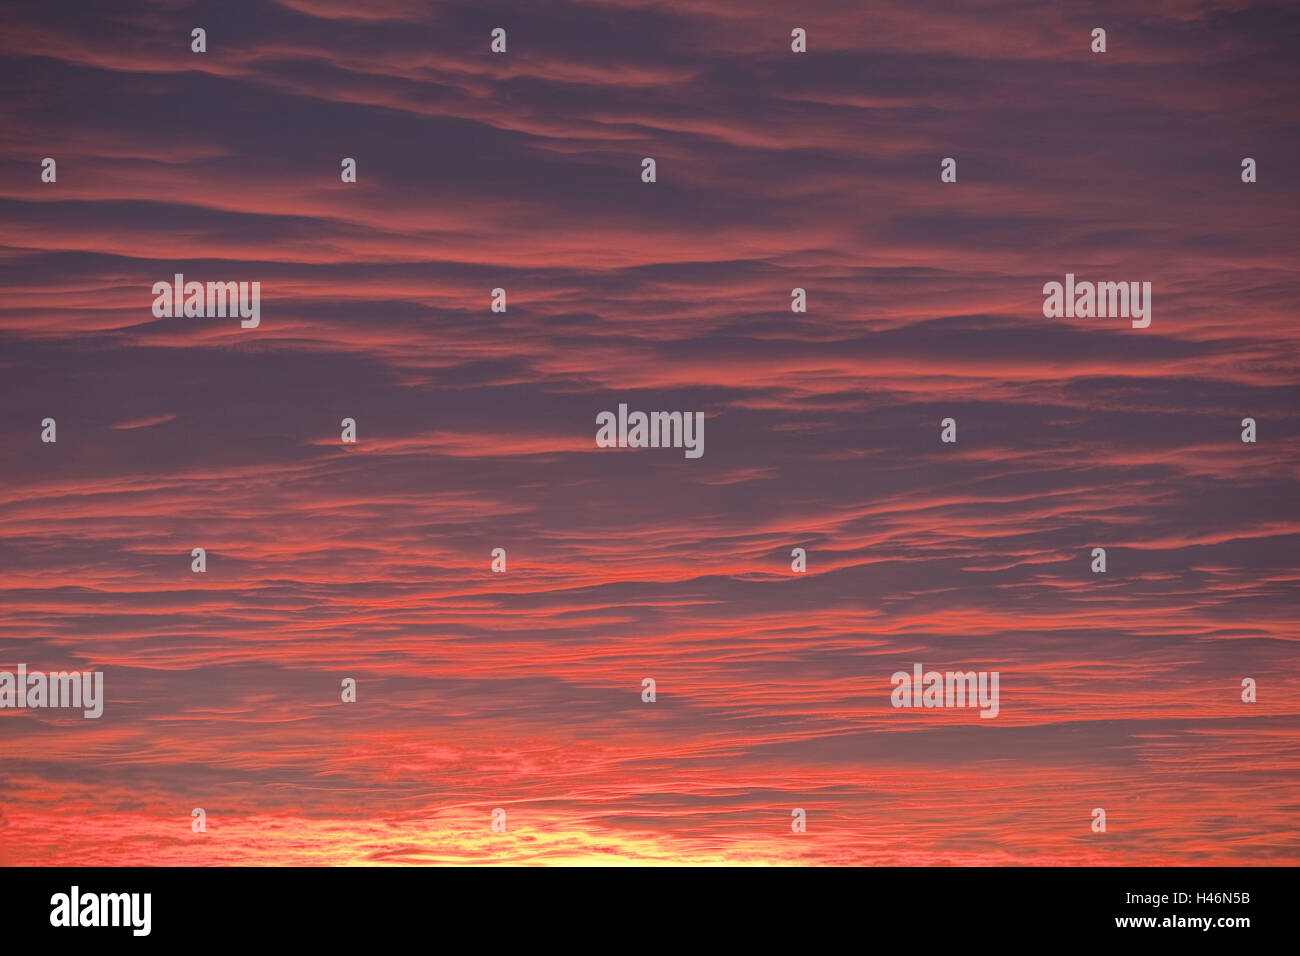 Heaven, evening mood, evening heaven, afterglow, red, redness, mood, clouds, sundown, - Stock Image